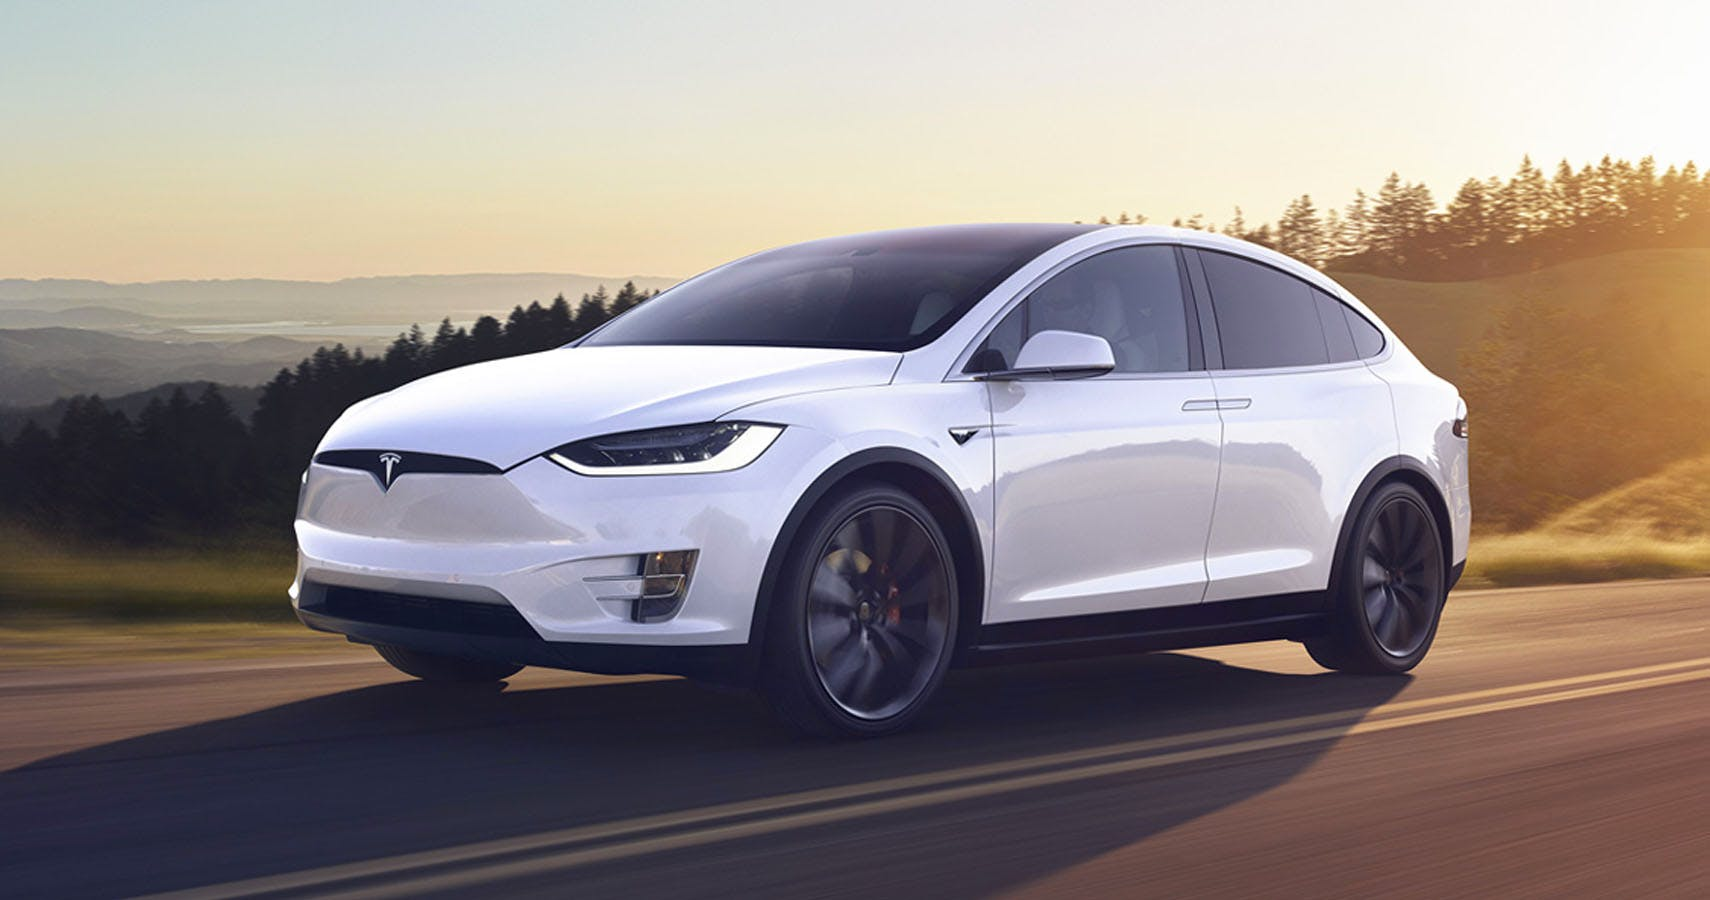 Tesla Leaks Info About New Self-Driving Software